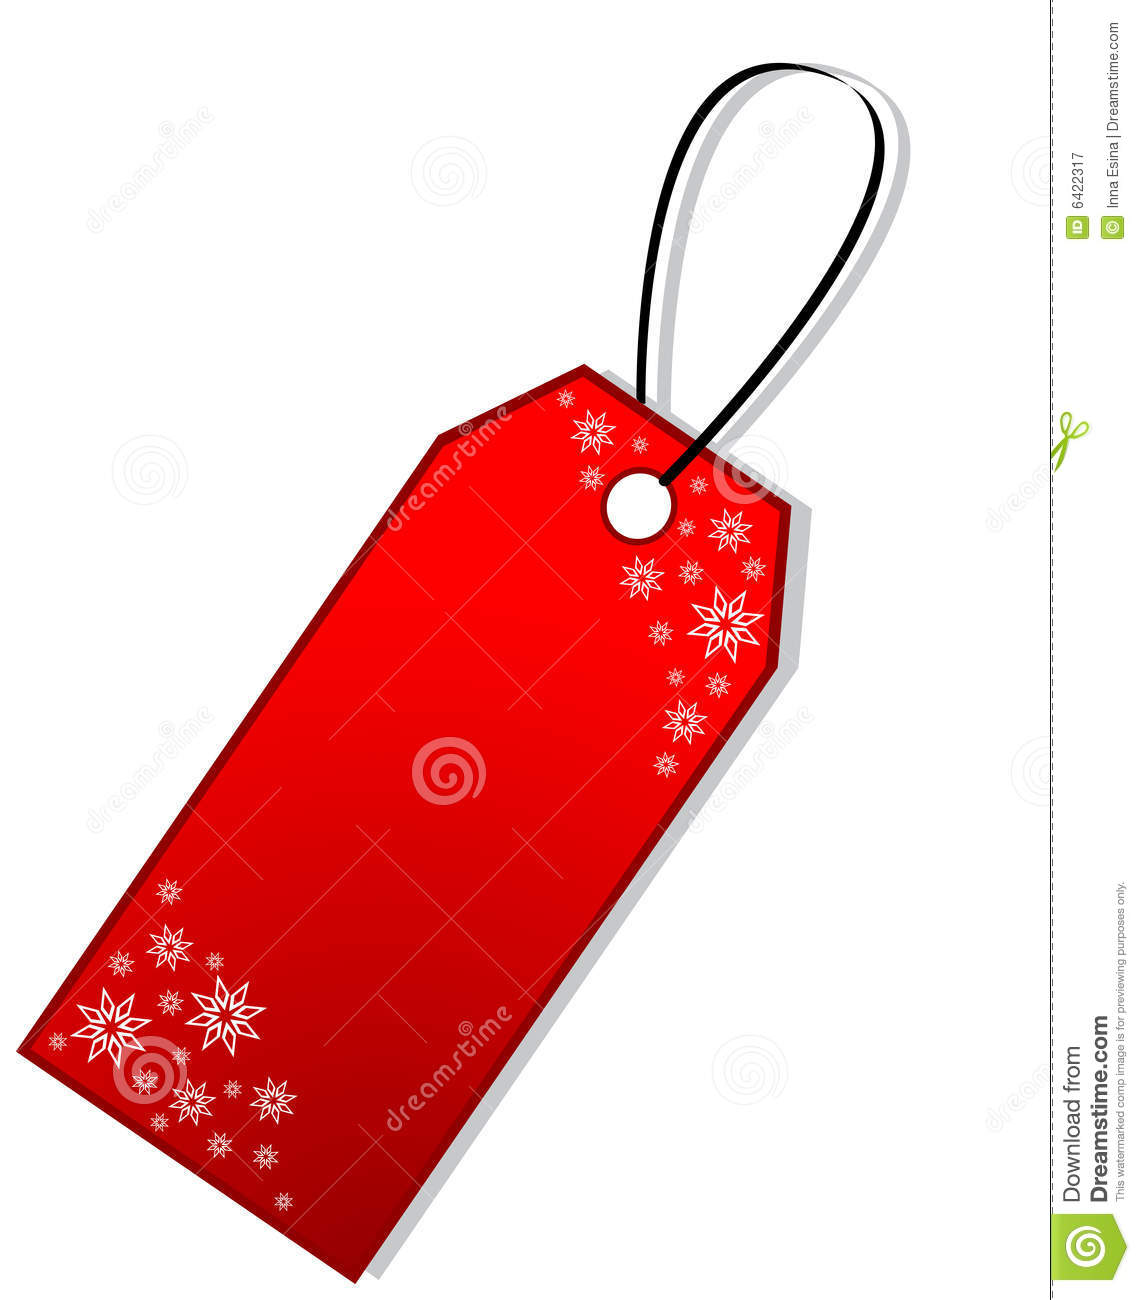 christmas tag clipart clipground gift tag clipart free gift tag clipart free download